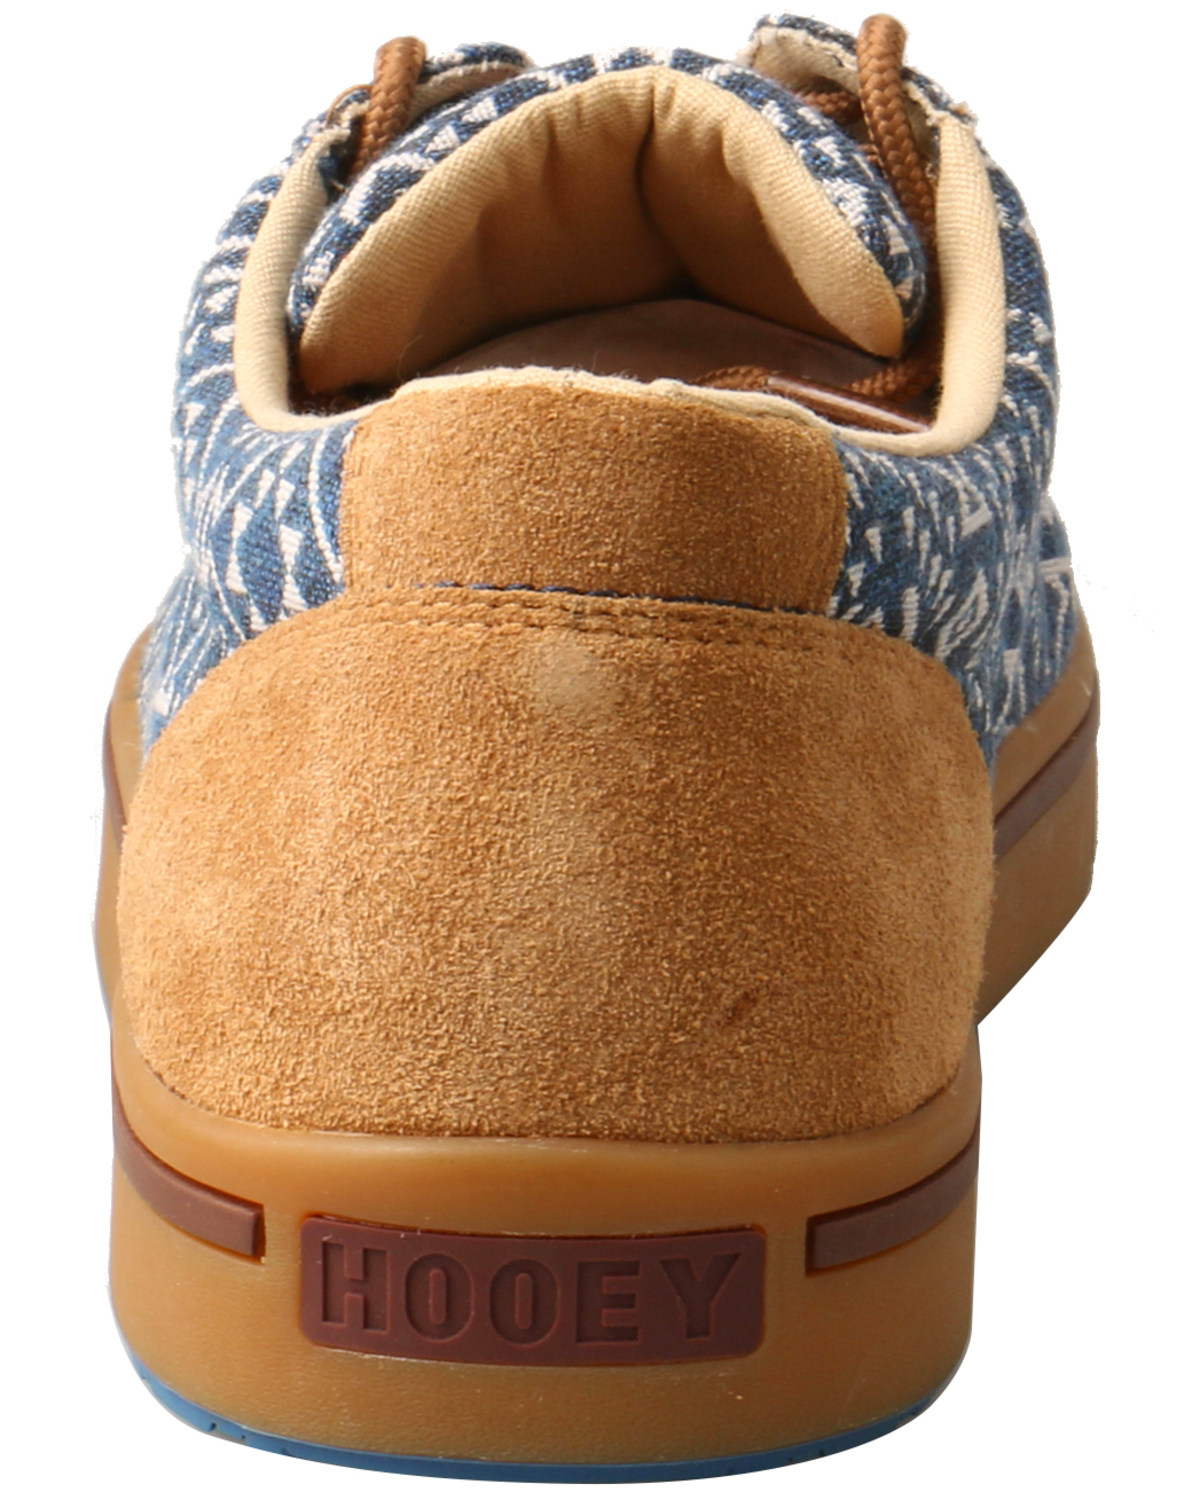 5a9ac9ae365 Twisted X Men s Hooey Lopers Shoes - Round Toe